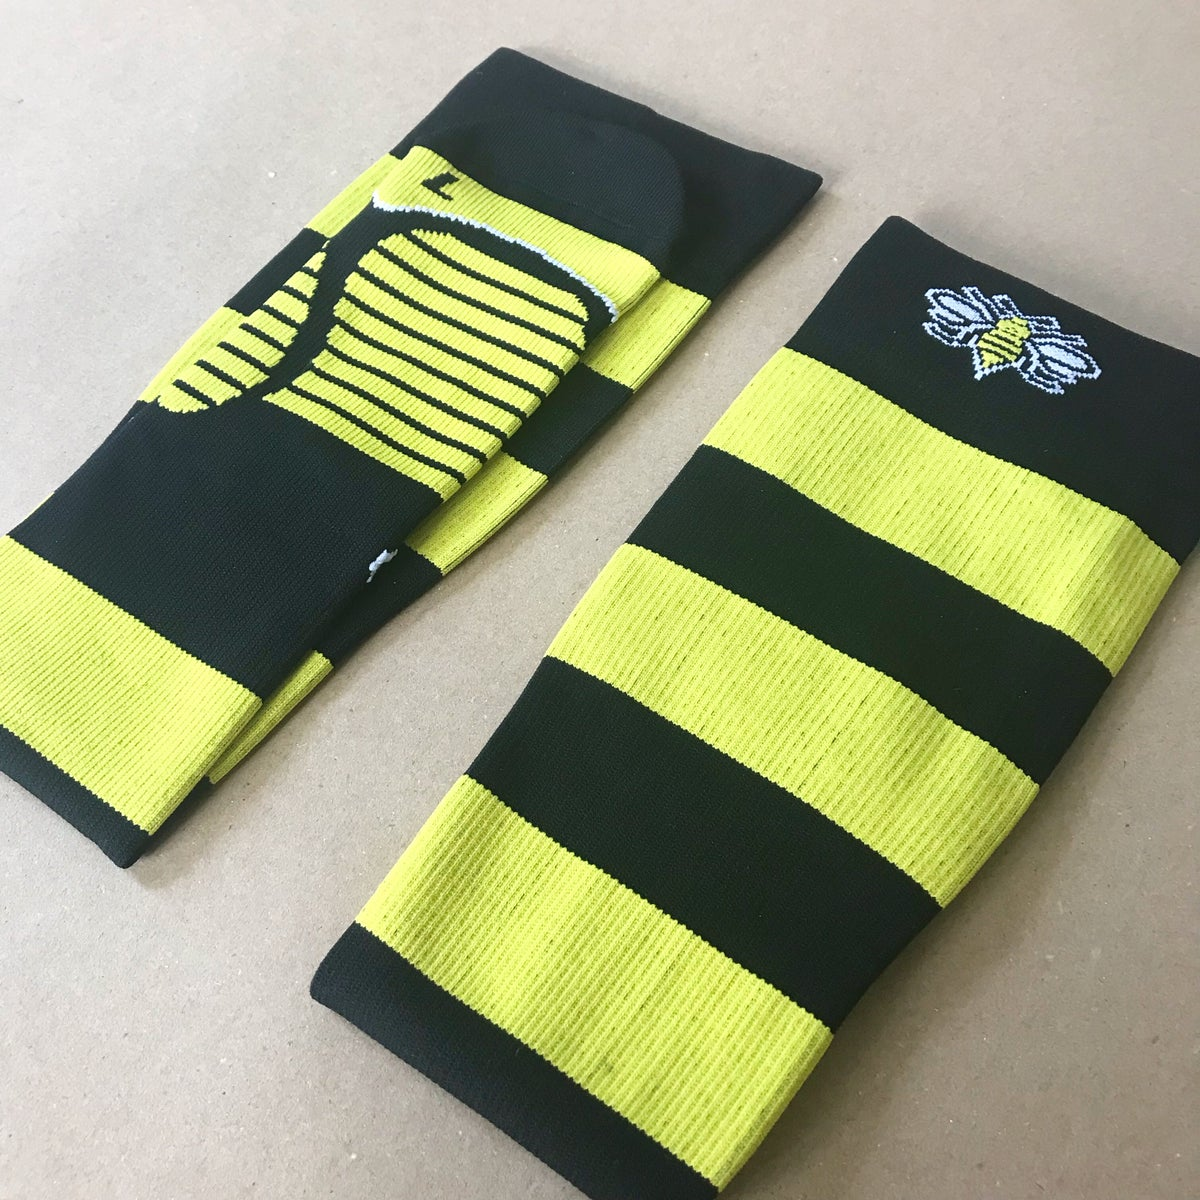 Image of BeesKnees Long Striped Compression Running Socks in Yellow + Black